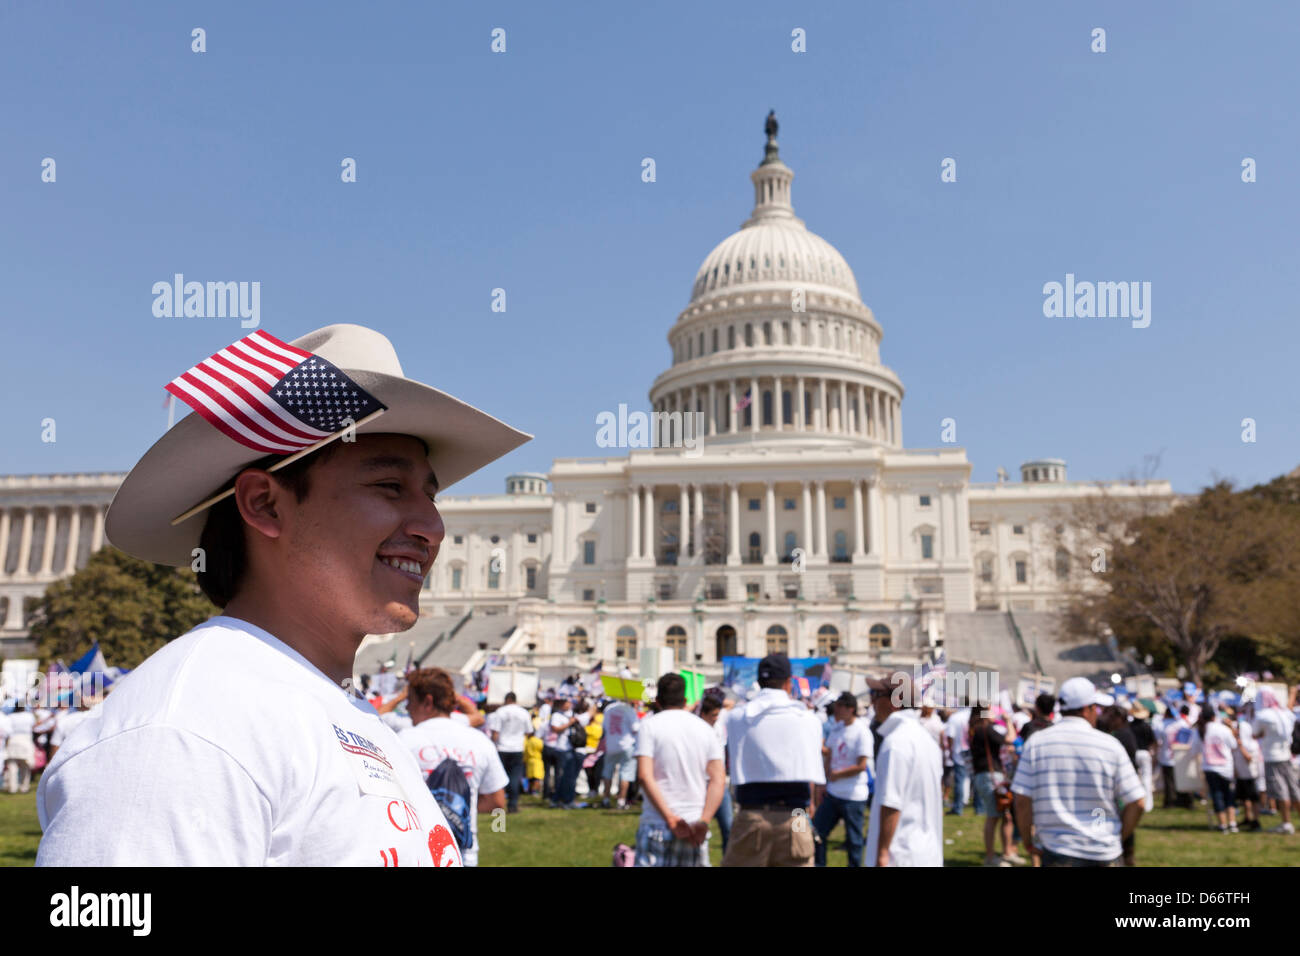 Latino man in front of the US Capitol building during the immigration reform rally - Washington, DC USA - Stock Image